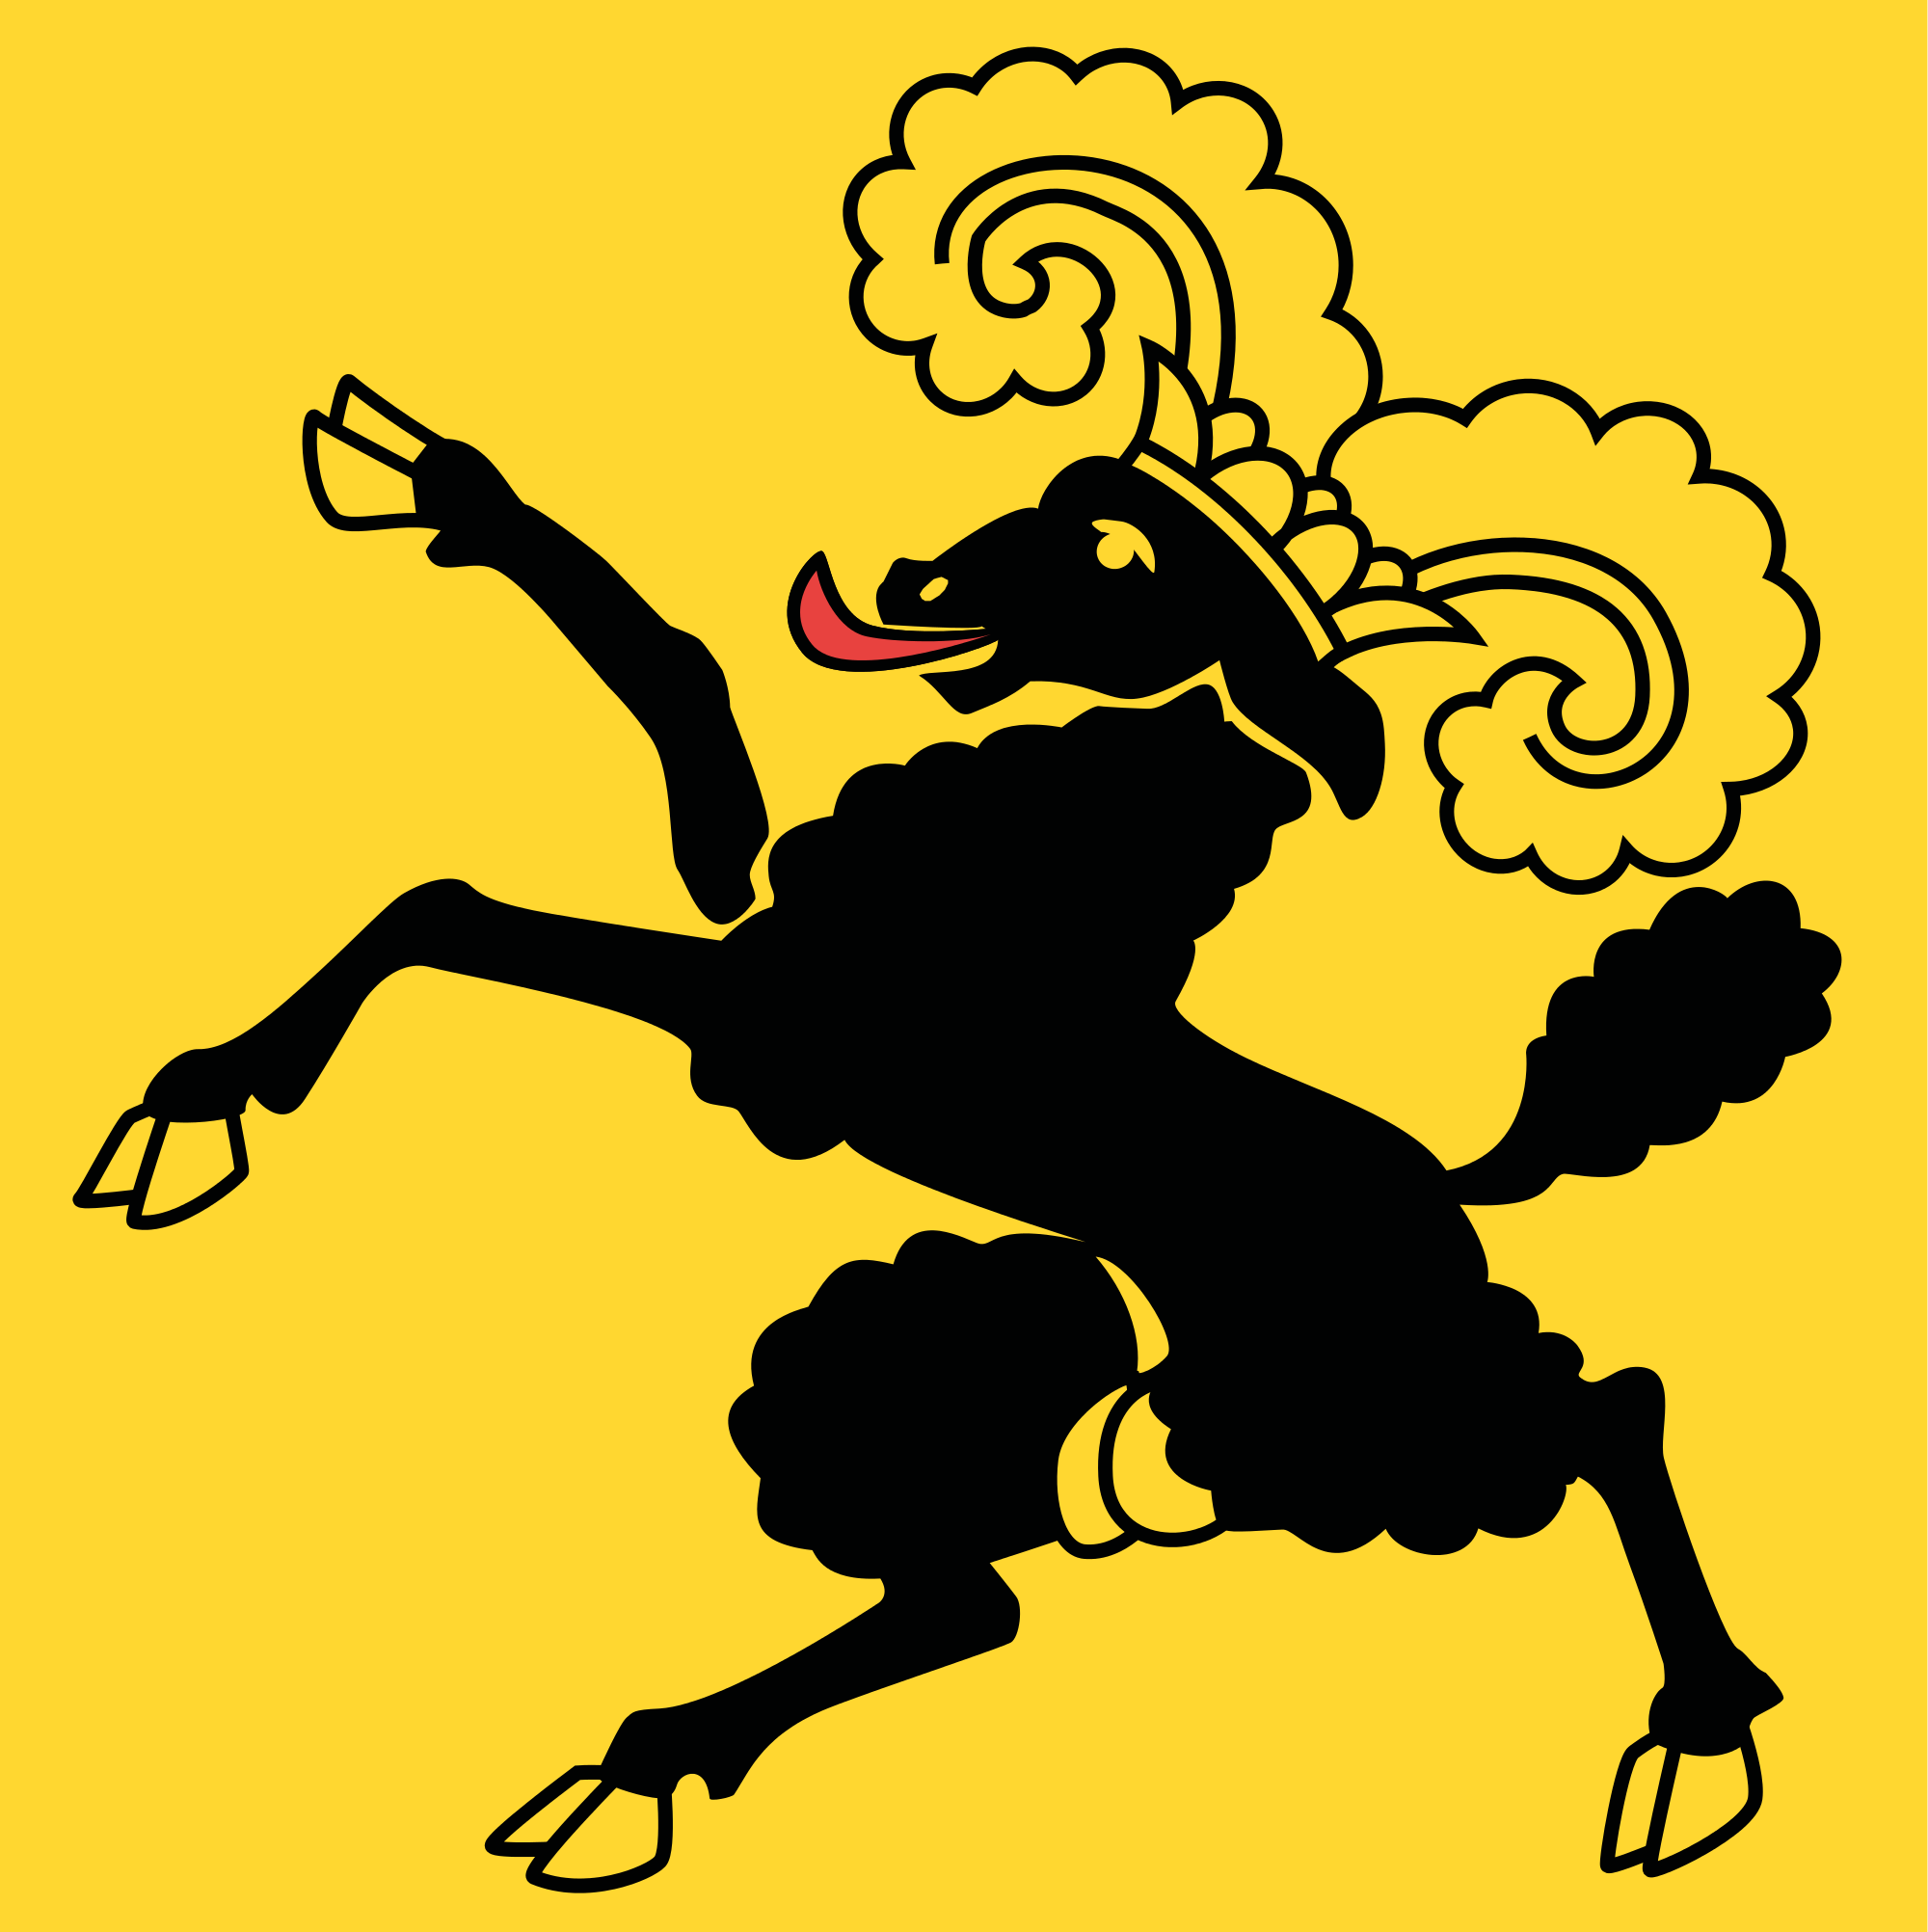 File:Flag of Canton of Schaffhausen.svg.